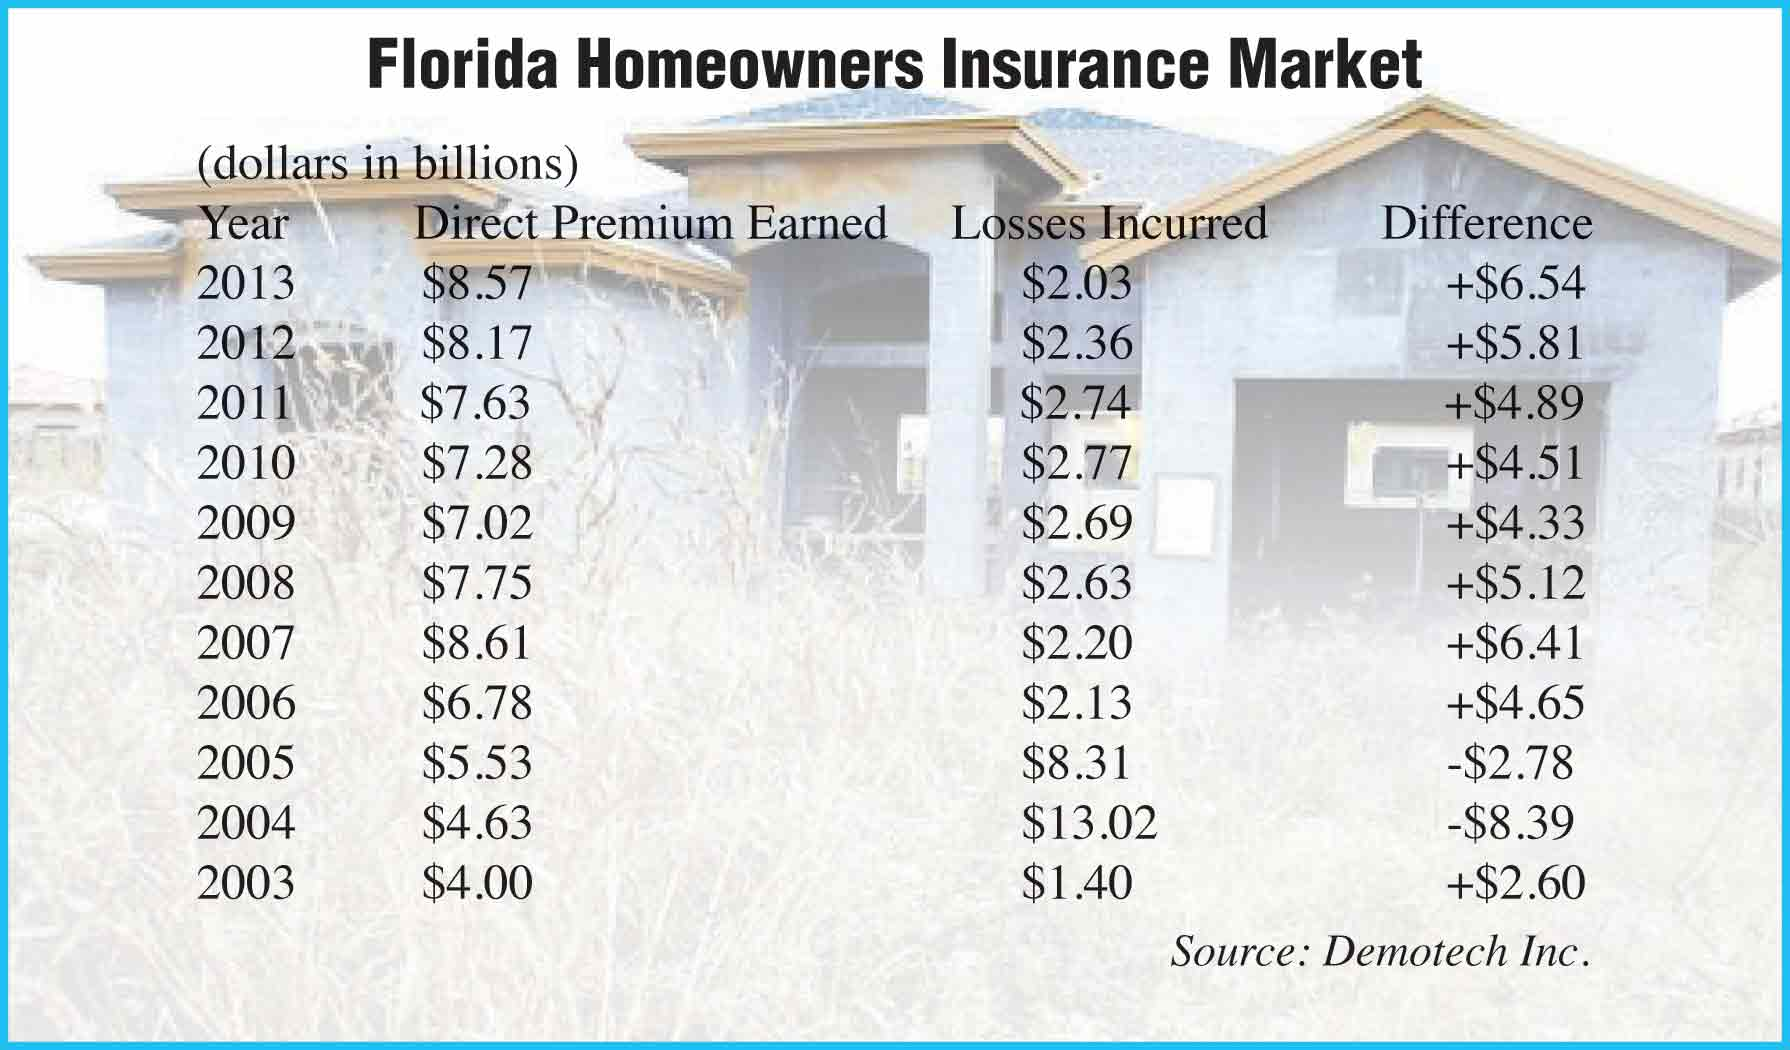 Home insurers' premium margin expands